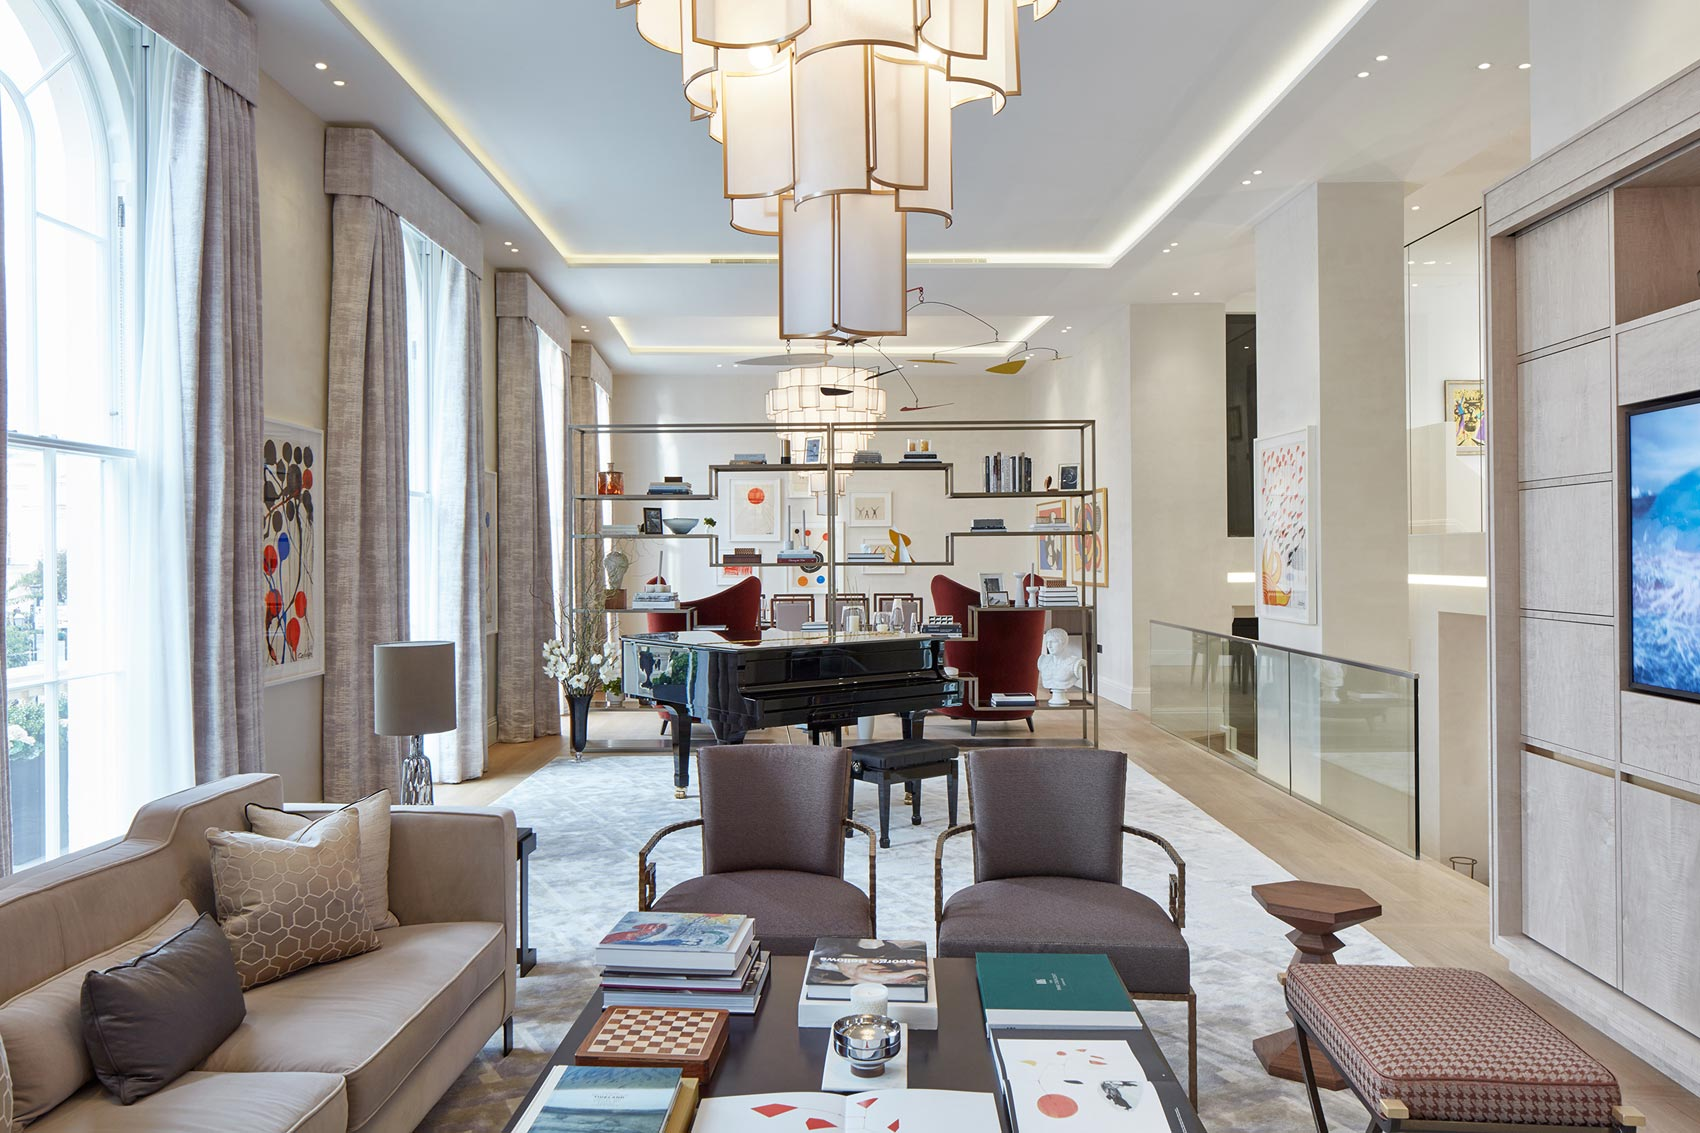 World-Class Art Meets First-Class Design At The Year's Most Luxurious Property Launch 9